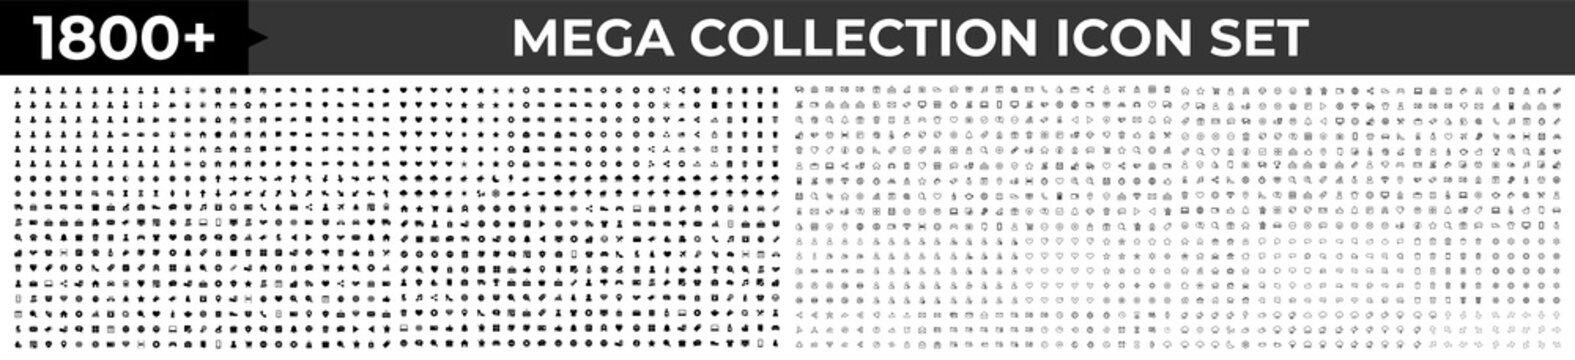 Big Huge set of 1800 icons in trendy line style. Mega collection icons concept of Business, e-commerce, finance, accounting. Big set Icons collection. Vector illustration